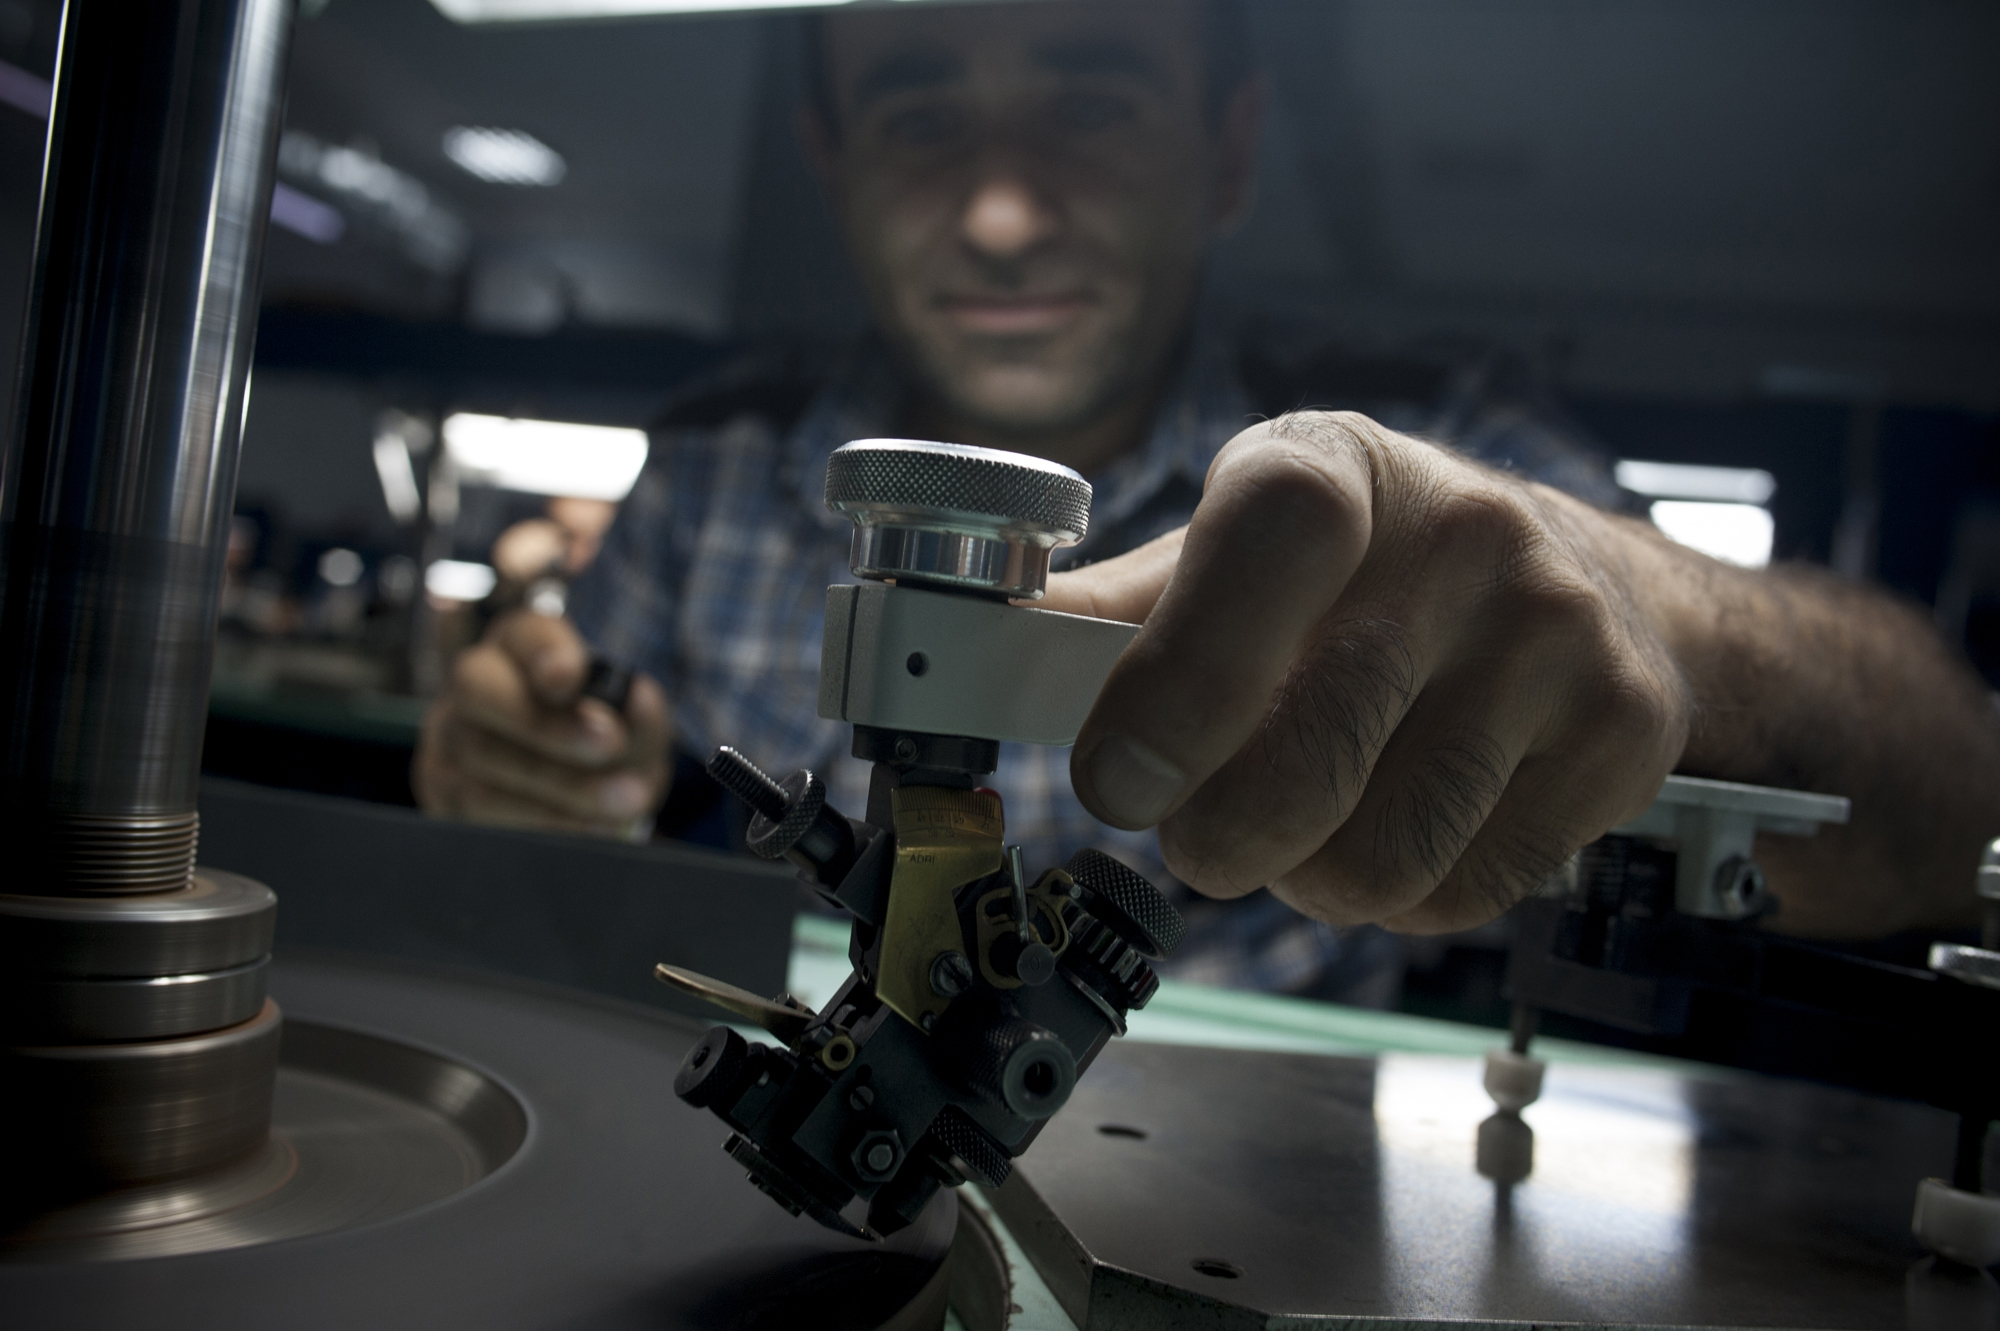 A polisher adjusts his machinery before starting on a new rough diamond.